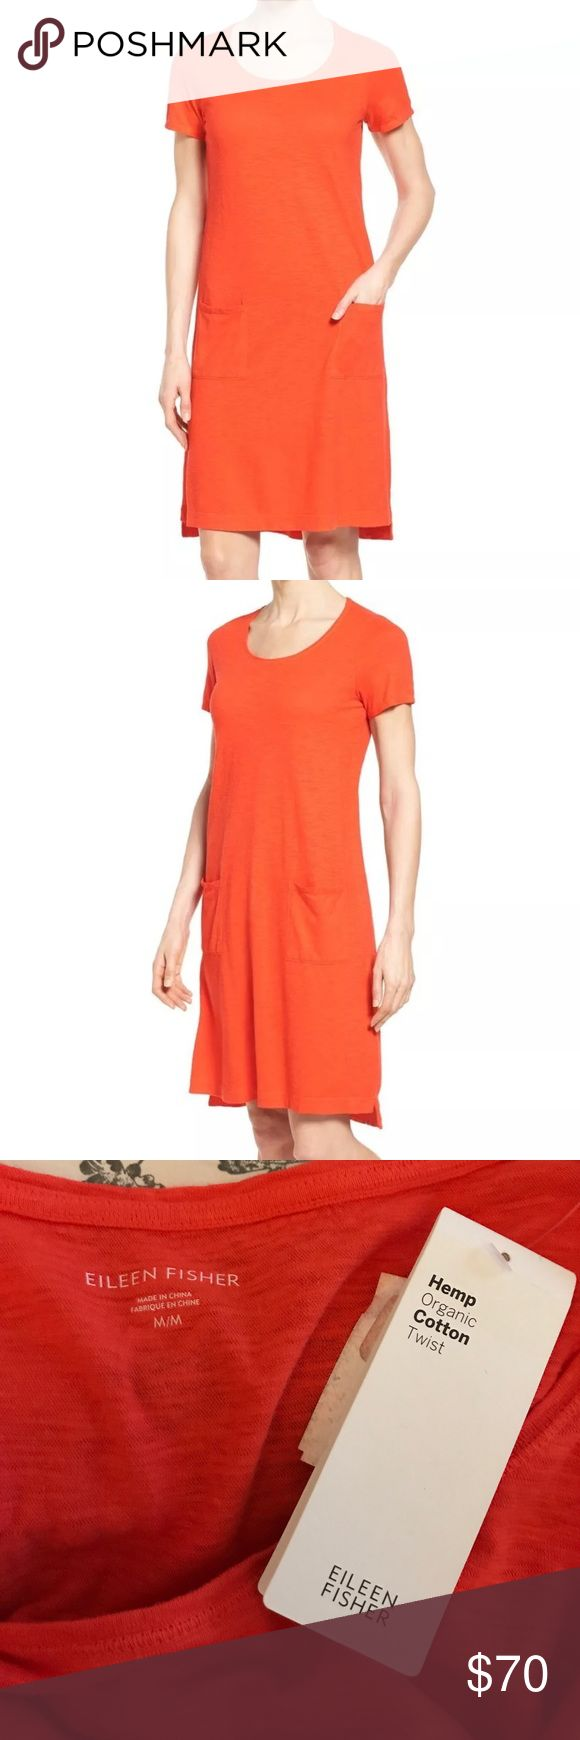 """NWT Eileen Fisher hemp organic cotton twist dress This is the """"Scoopneck Short Dress"""". Cut loose for comfort, this trending t-shirt dress from Eileen Fisher Petites comes in an essential orange solid. Two front patch pockets and T-shirt styling define the laid back ease of a short, figure skimming shift cut from a slub-knit blend of hemp and cotton. Slips on over head. Scooped neck. Short sleeves. Vented step hem. A-line silhouette. Designed for an easy, classic fit. Unlined. Approximately…"""